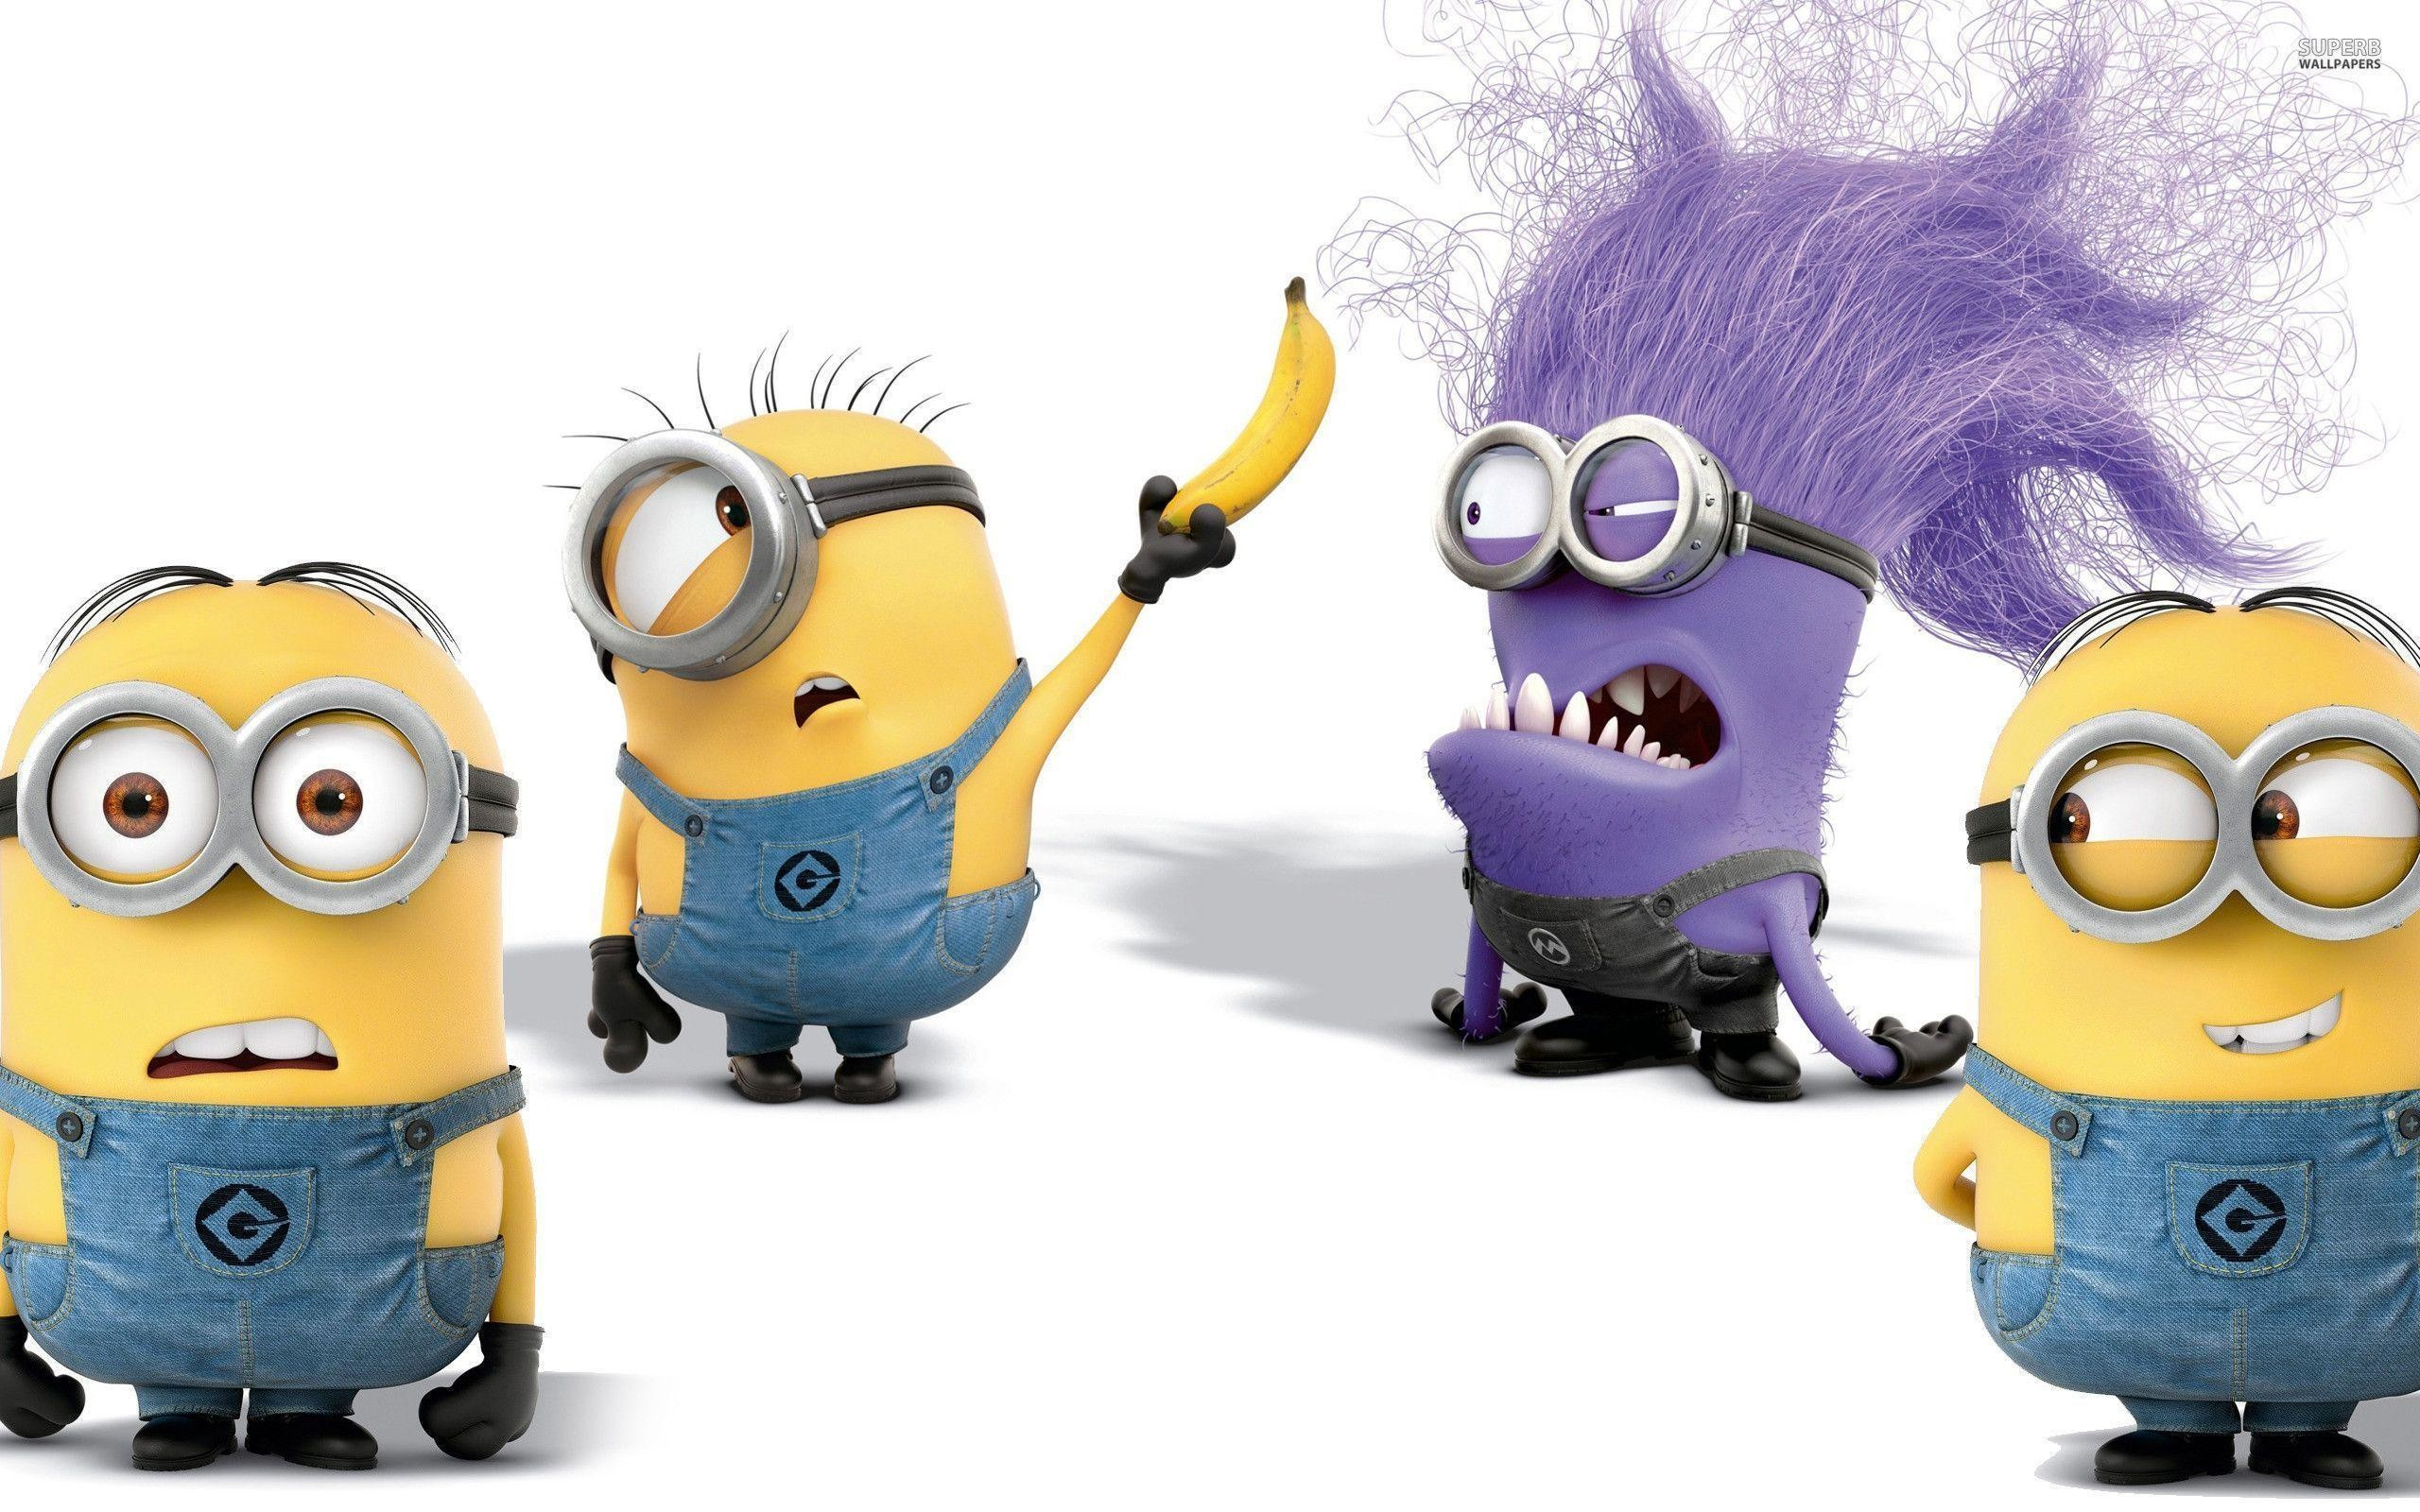 Res: 2560x1600, Minion wallpapers